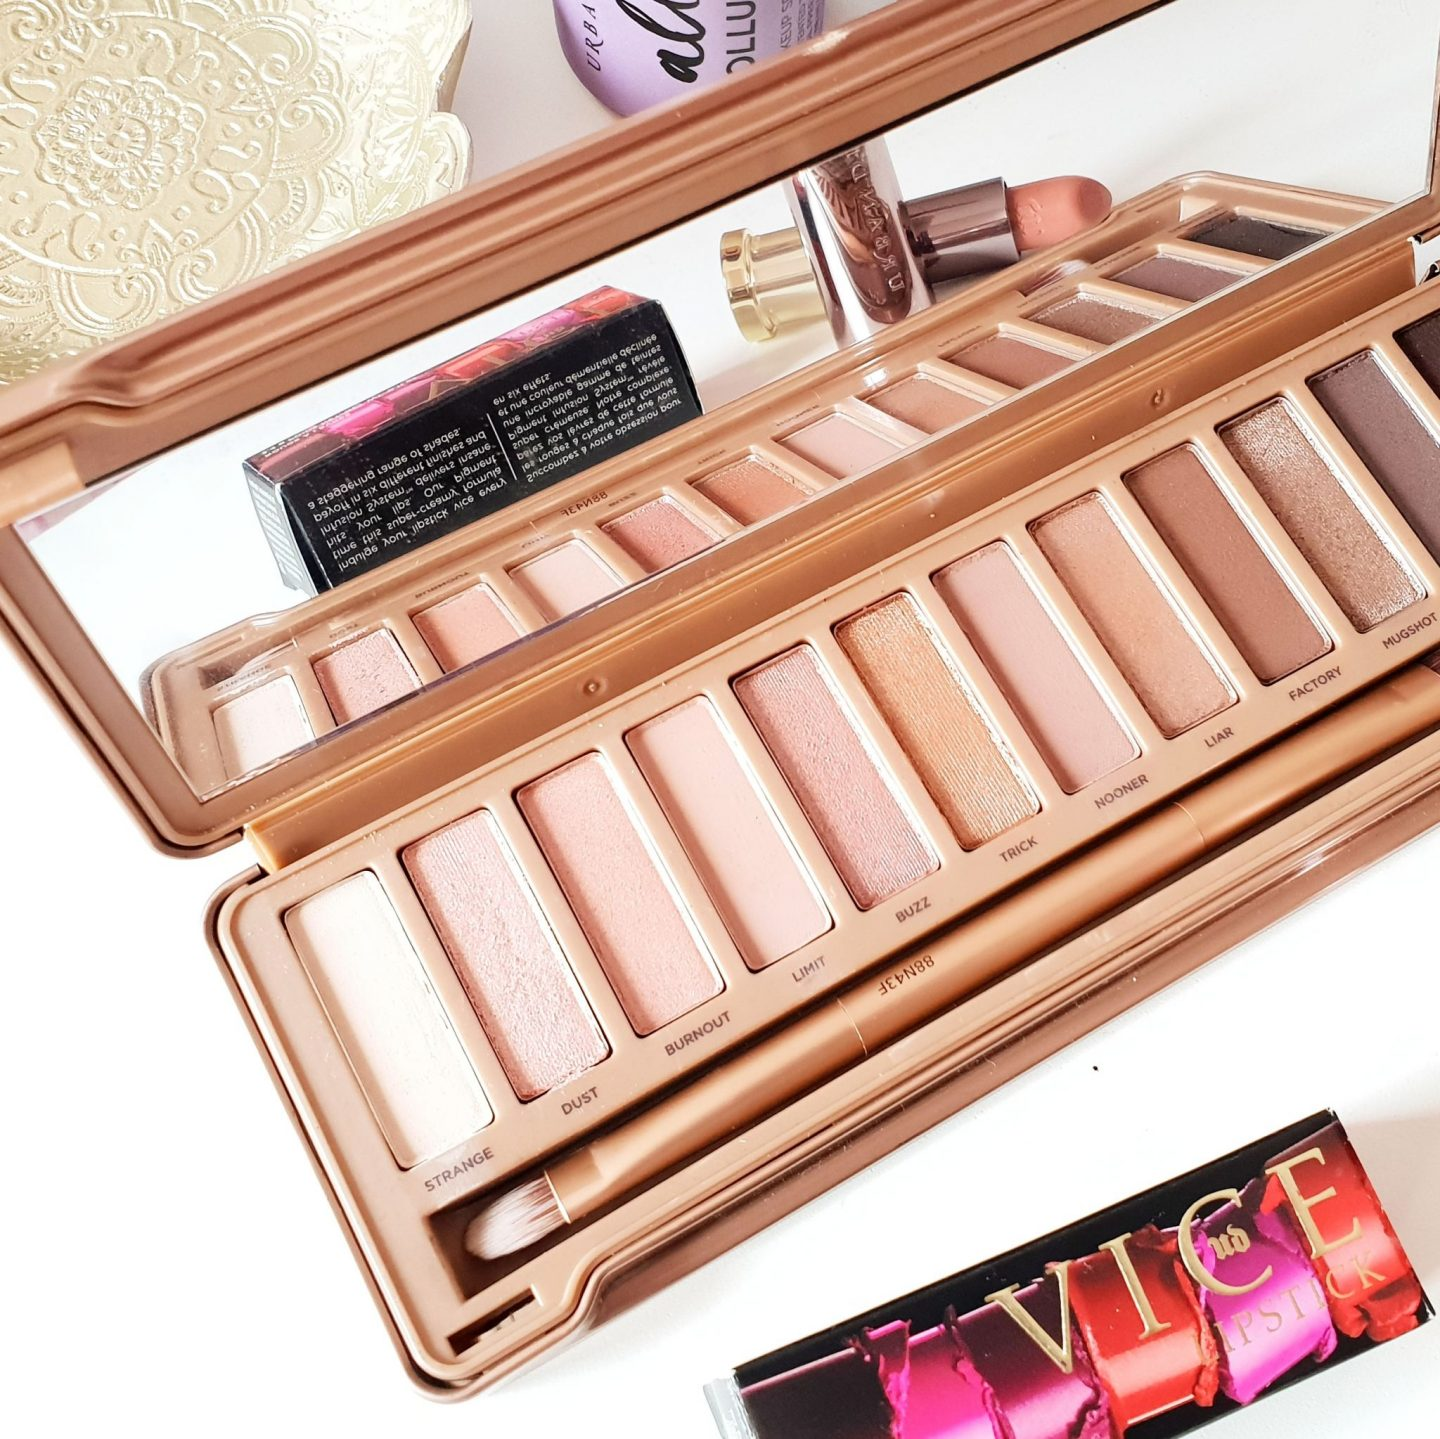 Urban Decay Naked3 Eyeshadow Palette Swatches